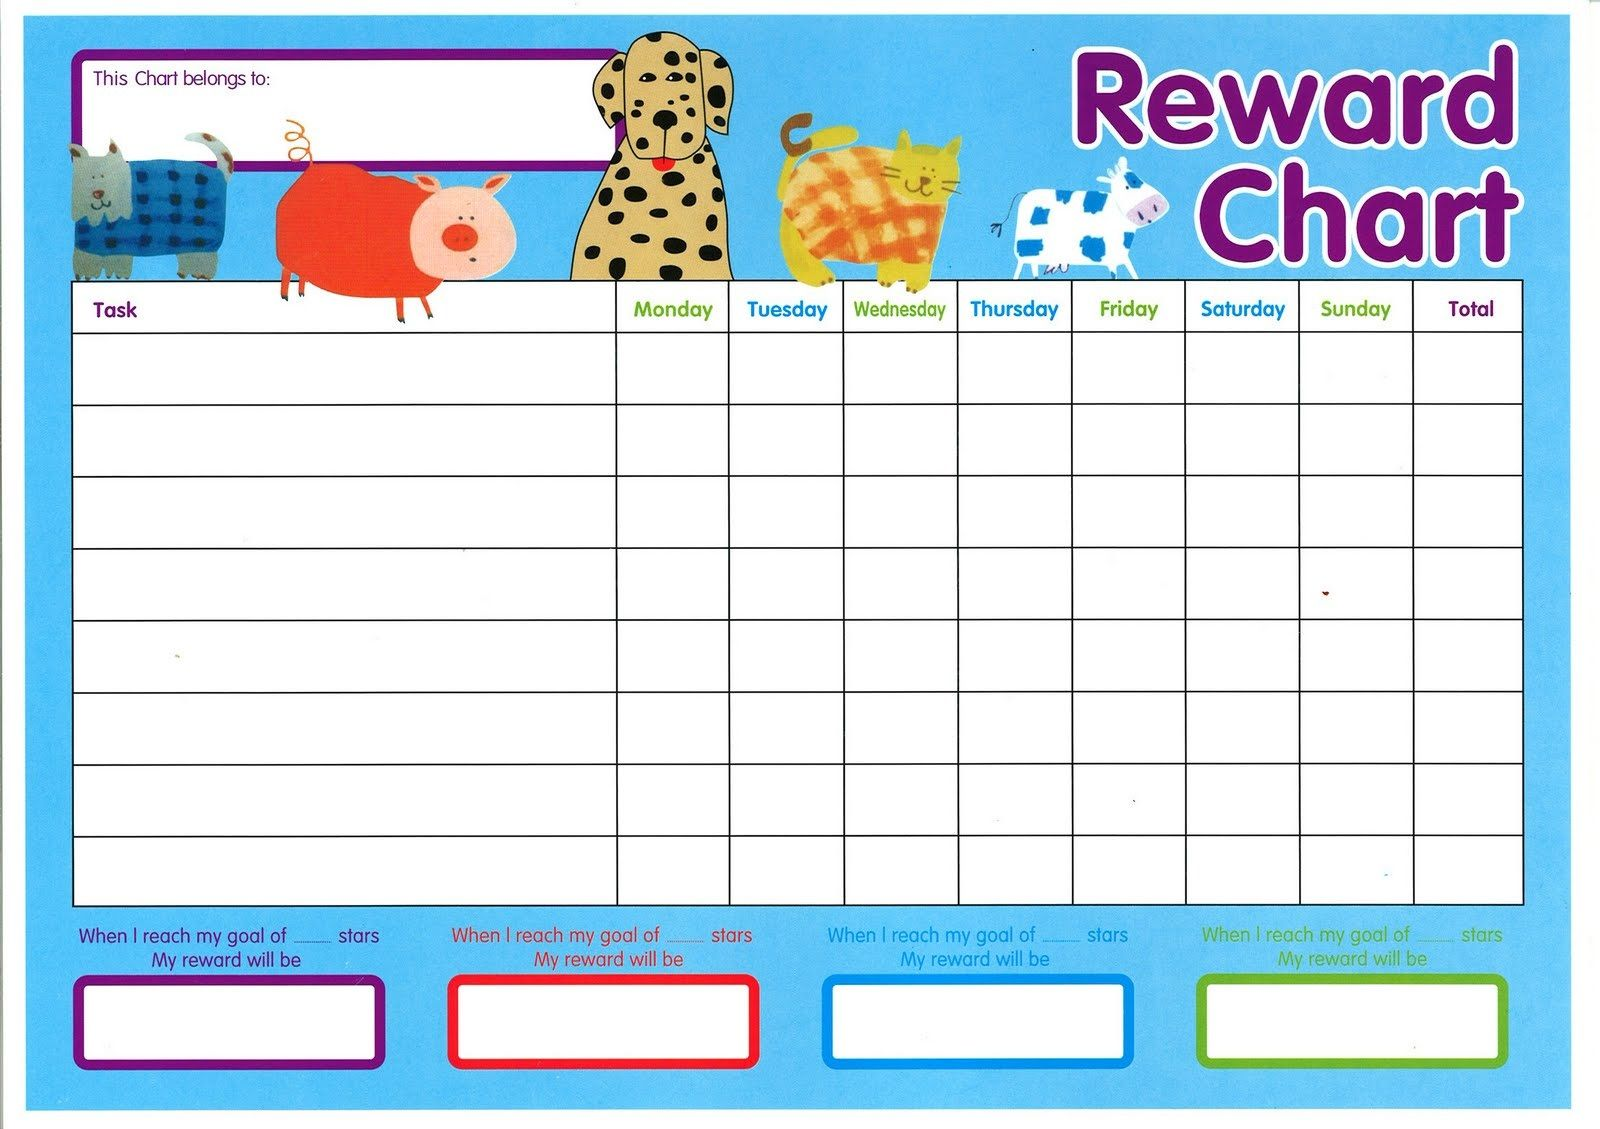 Refreshing image intended for reward chart printable